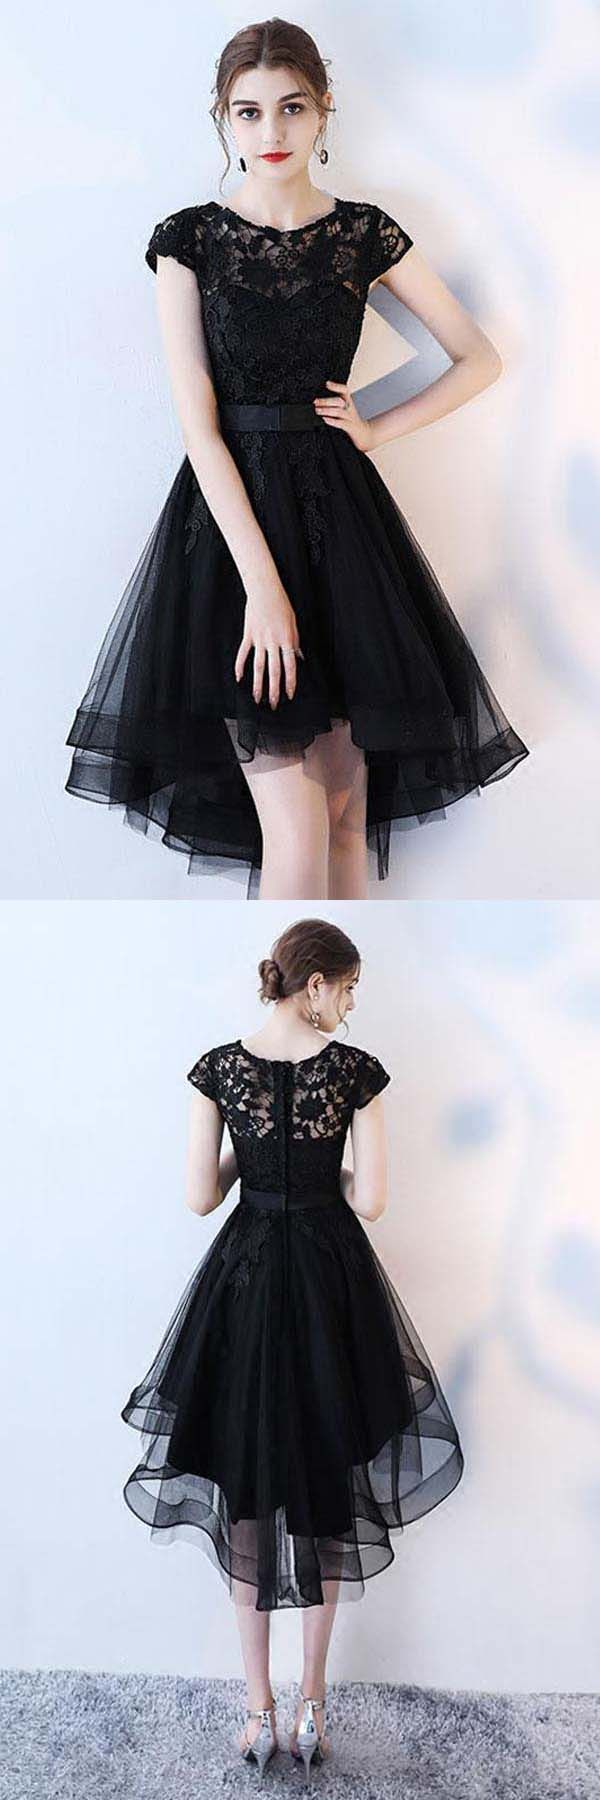 Black lace short prom dress hight low evening dress homecoming